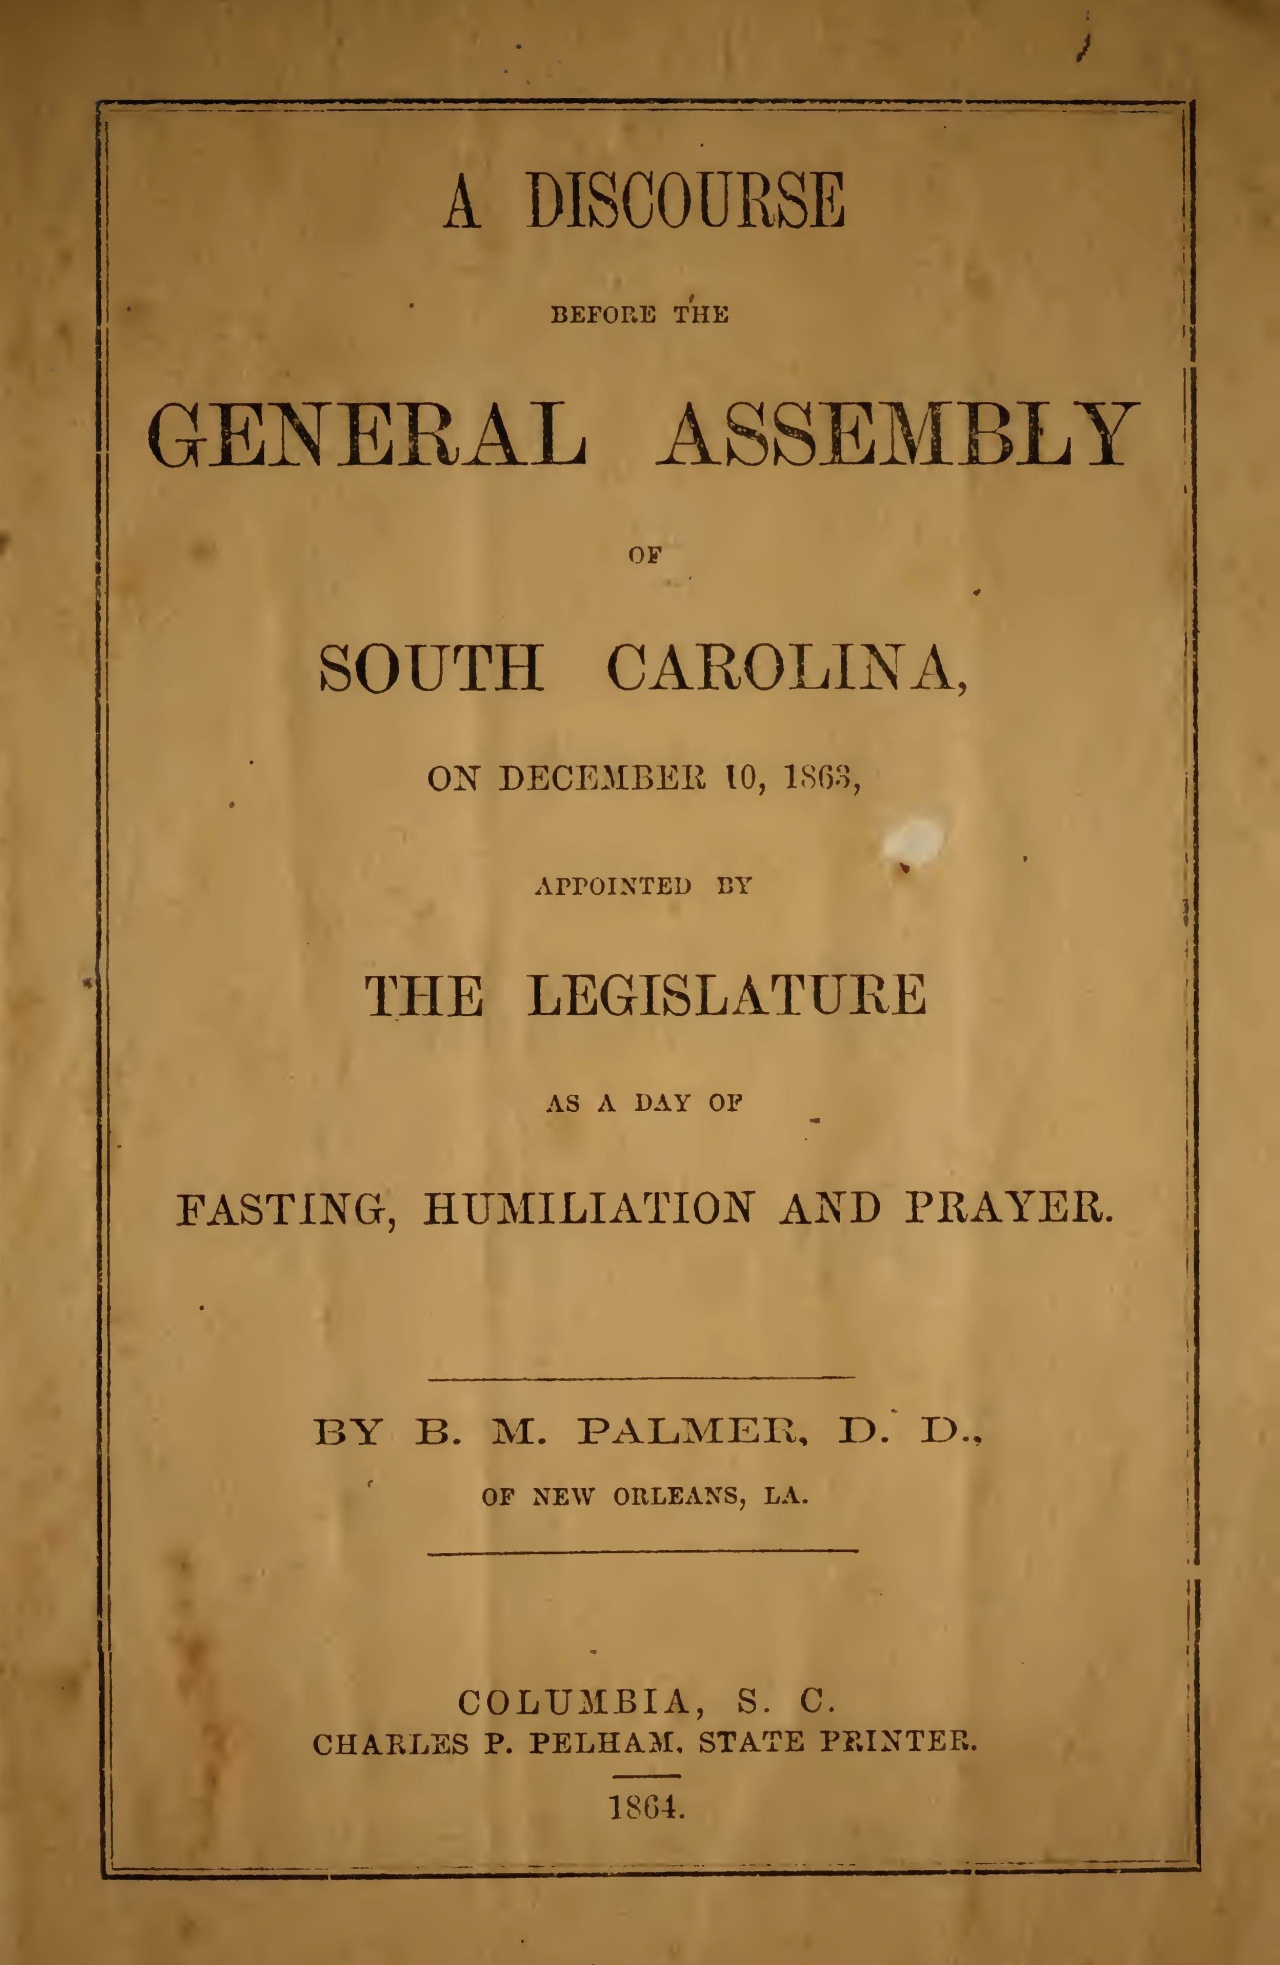 Palmer, Benjamin Morgan, A Discourse Before the General Assembly of South Carolina, December 10, 1863 Title Page.jpg